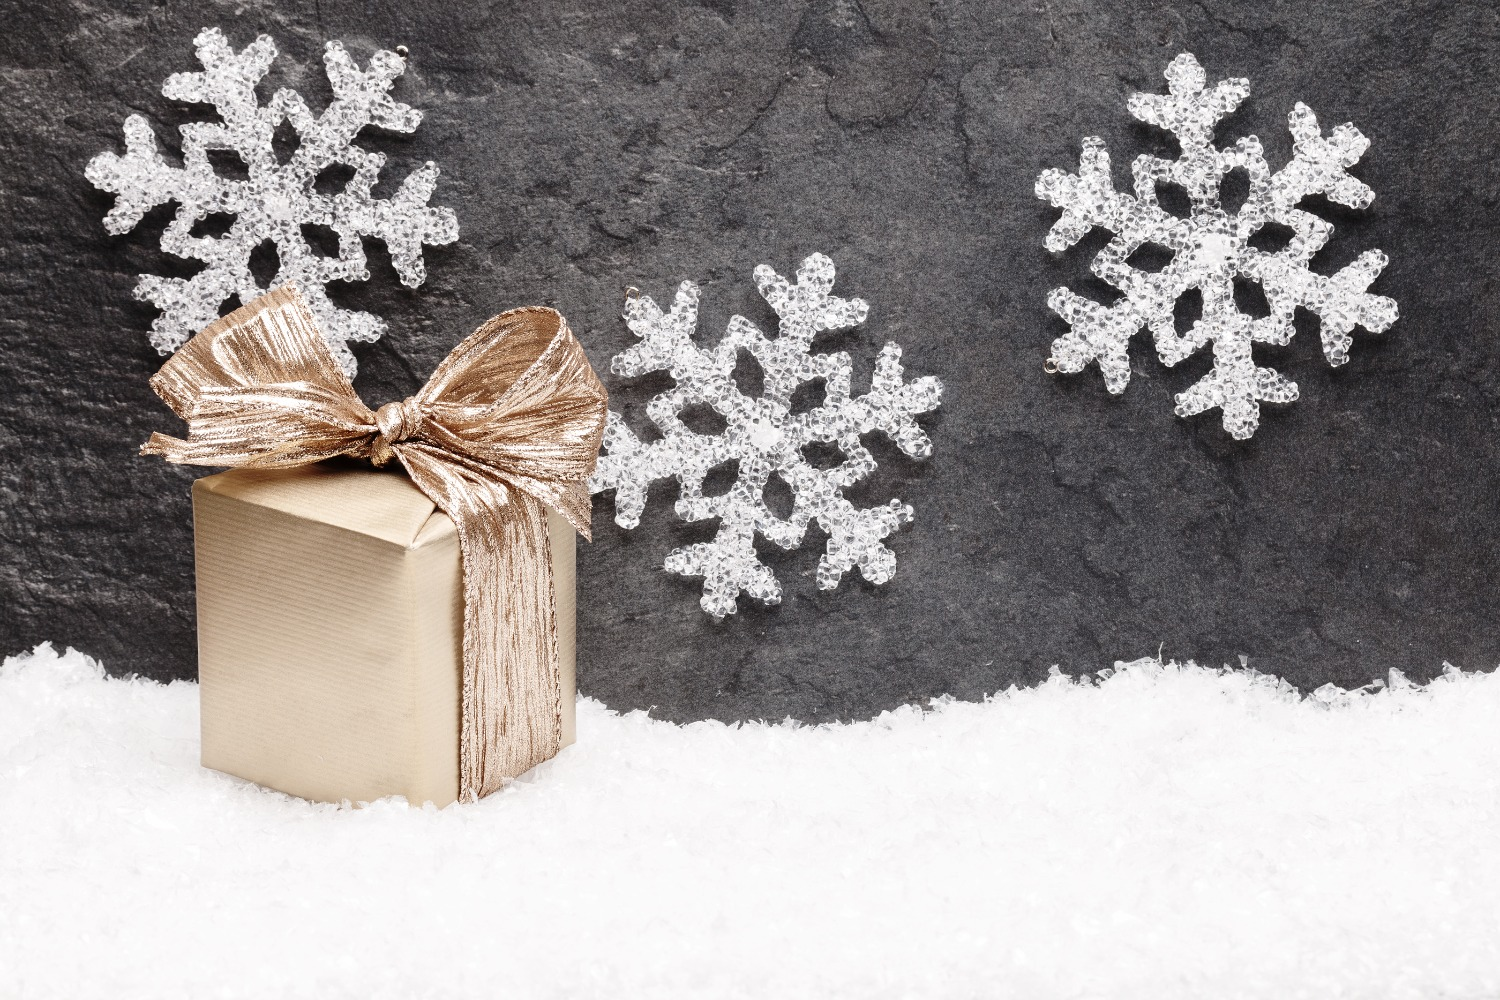 Christmas greeting card. Noel festive background. New year symbol. Gold gift box on snow._edited